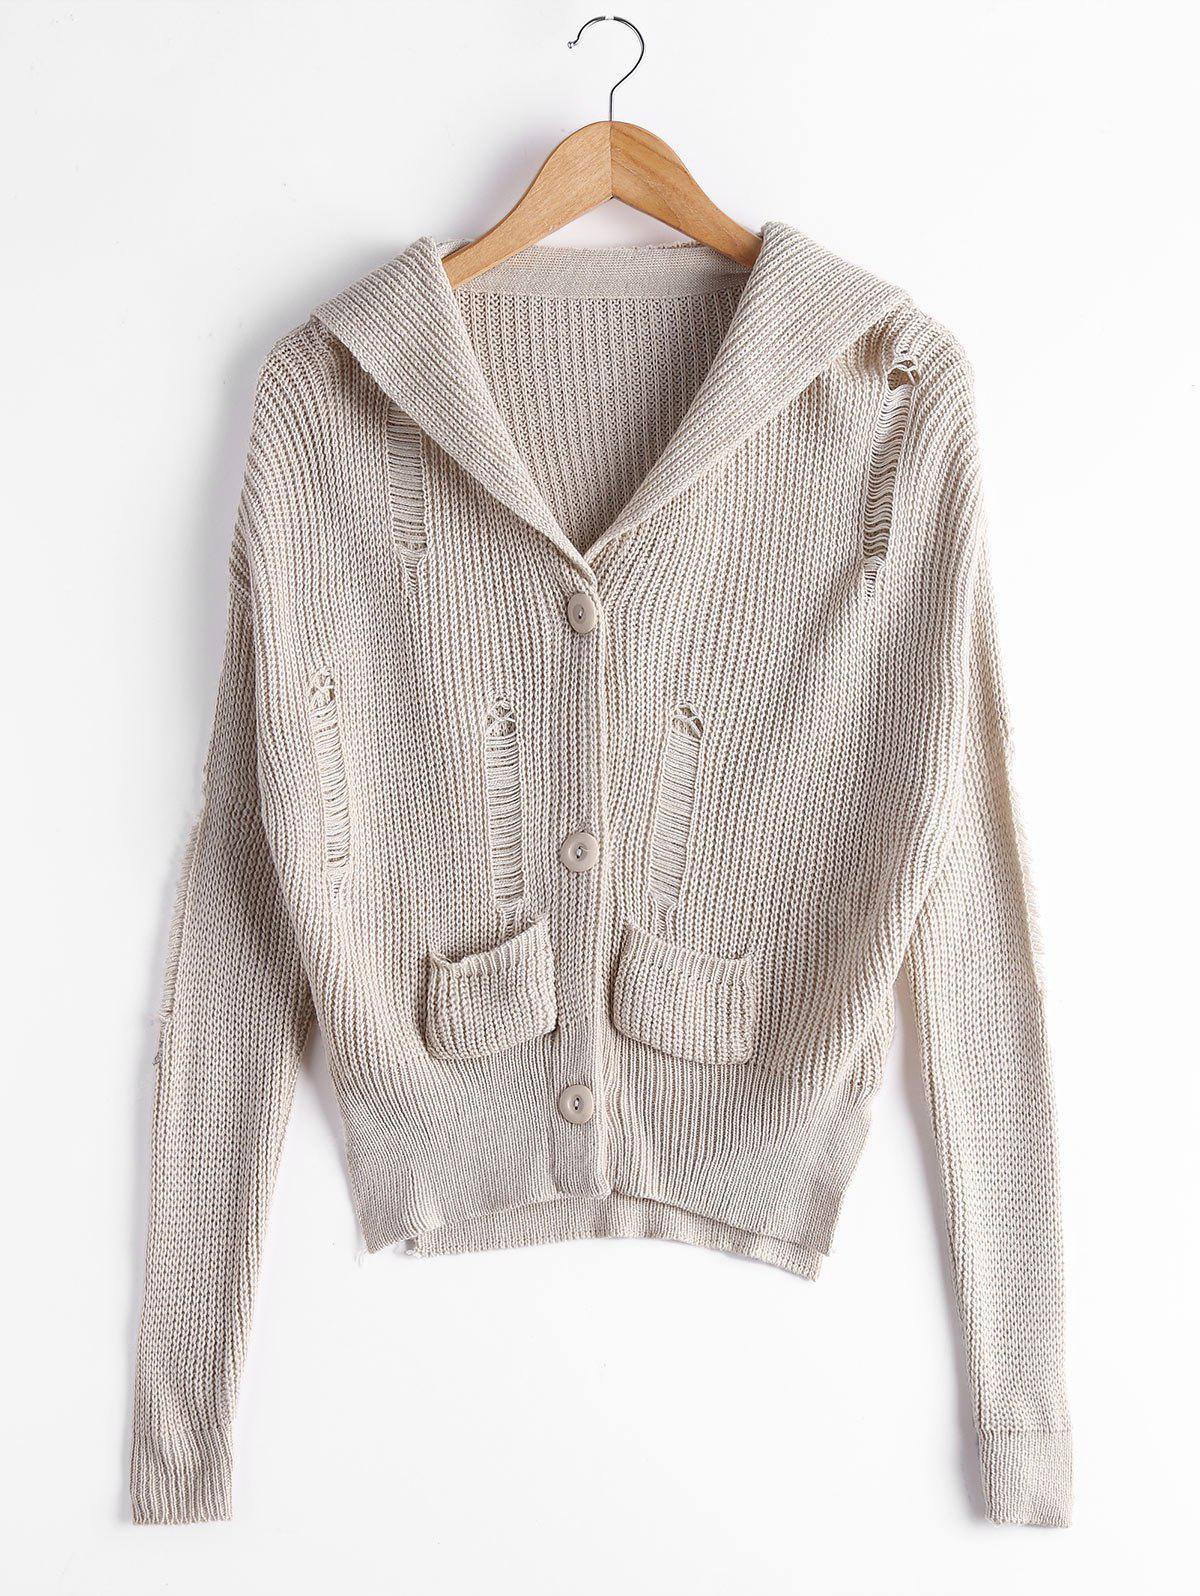 Button Up Ripped Cardigan with Pockets